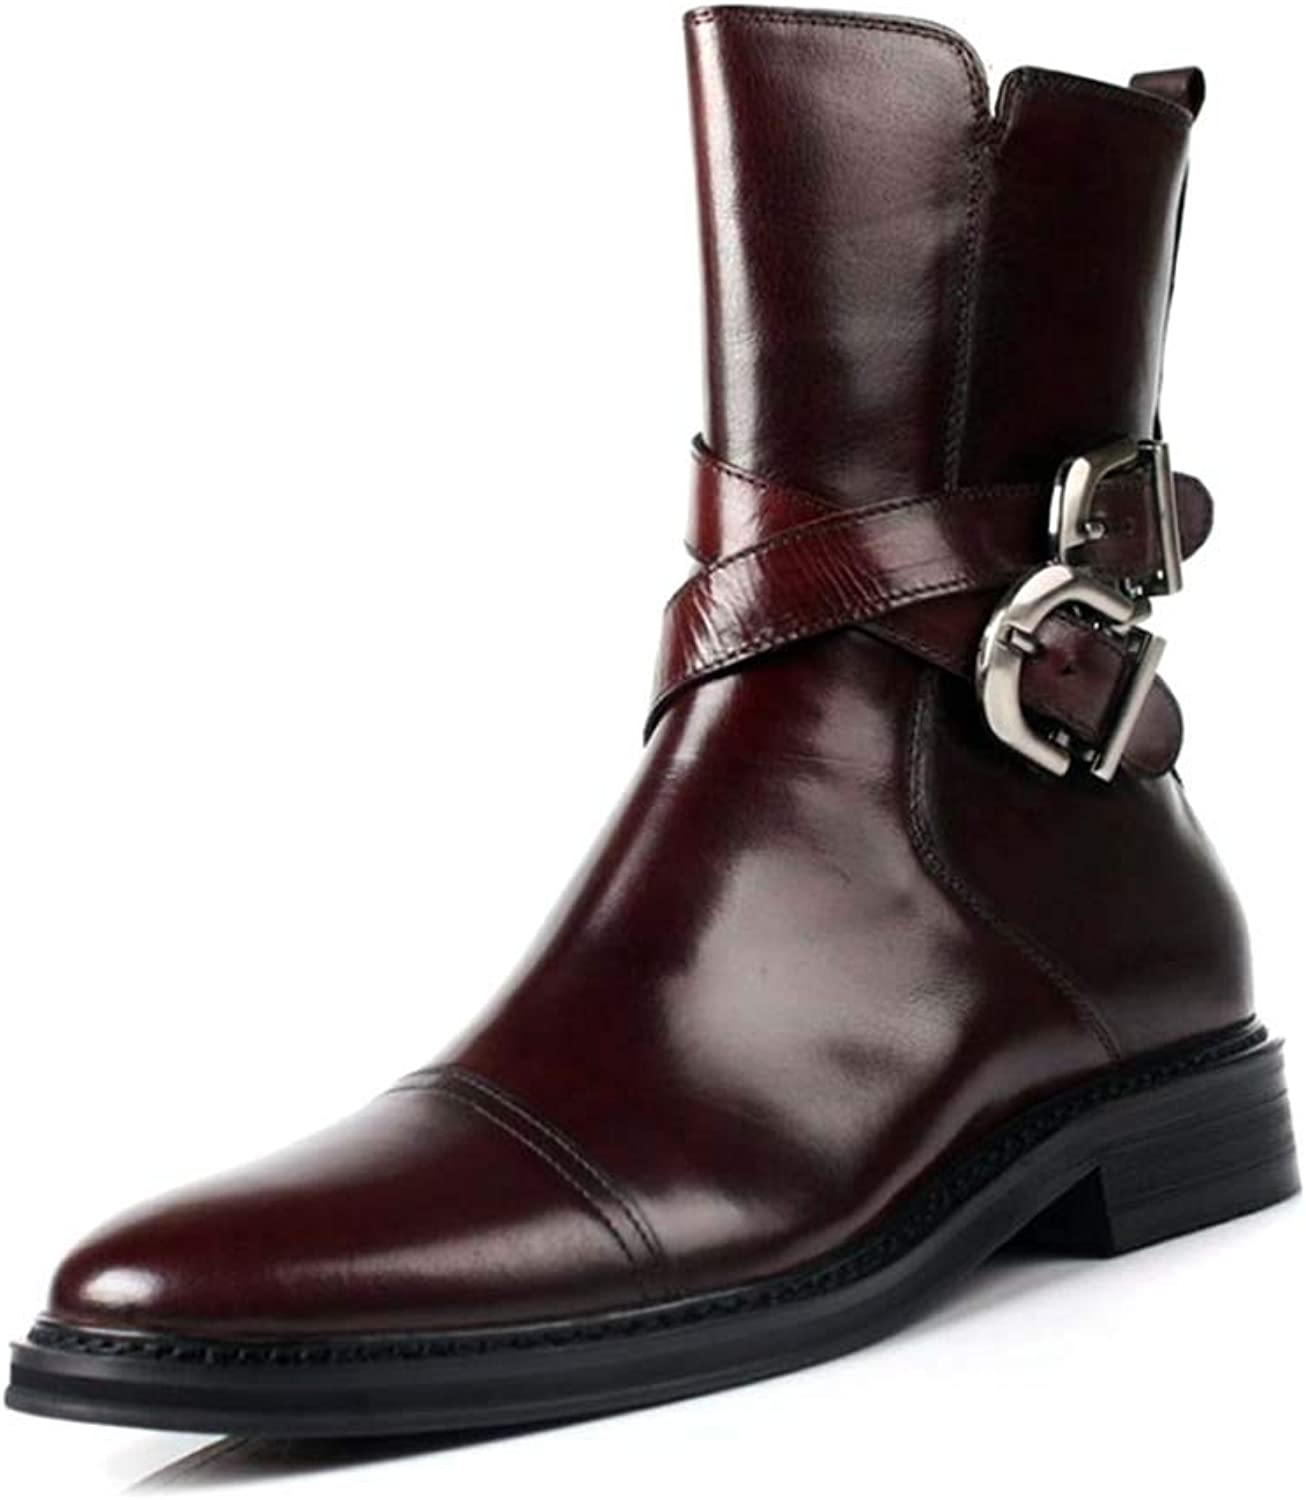 Men Chelsea Boot,Leather England Buckle Zipper Leather Martin Boots High-top Business shoes Oxford shoes